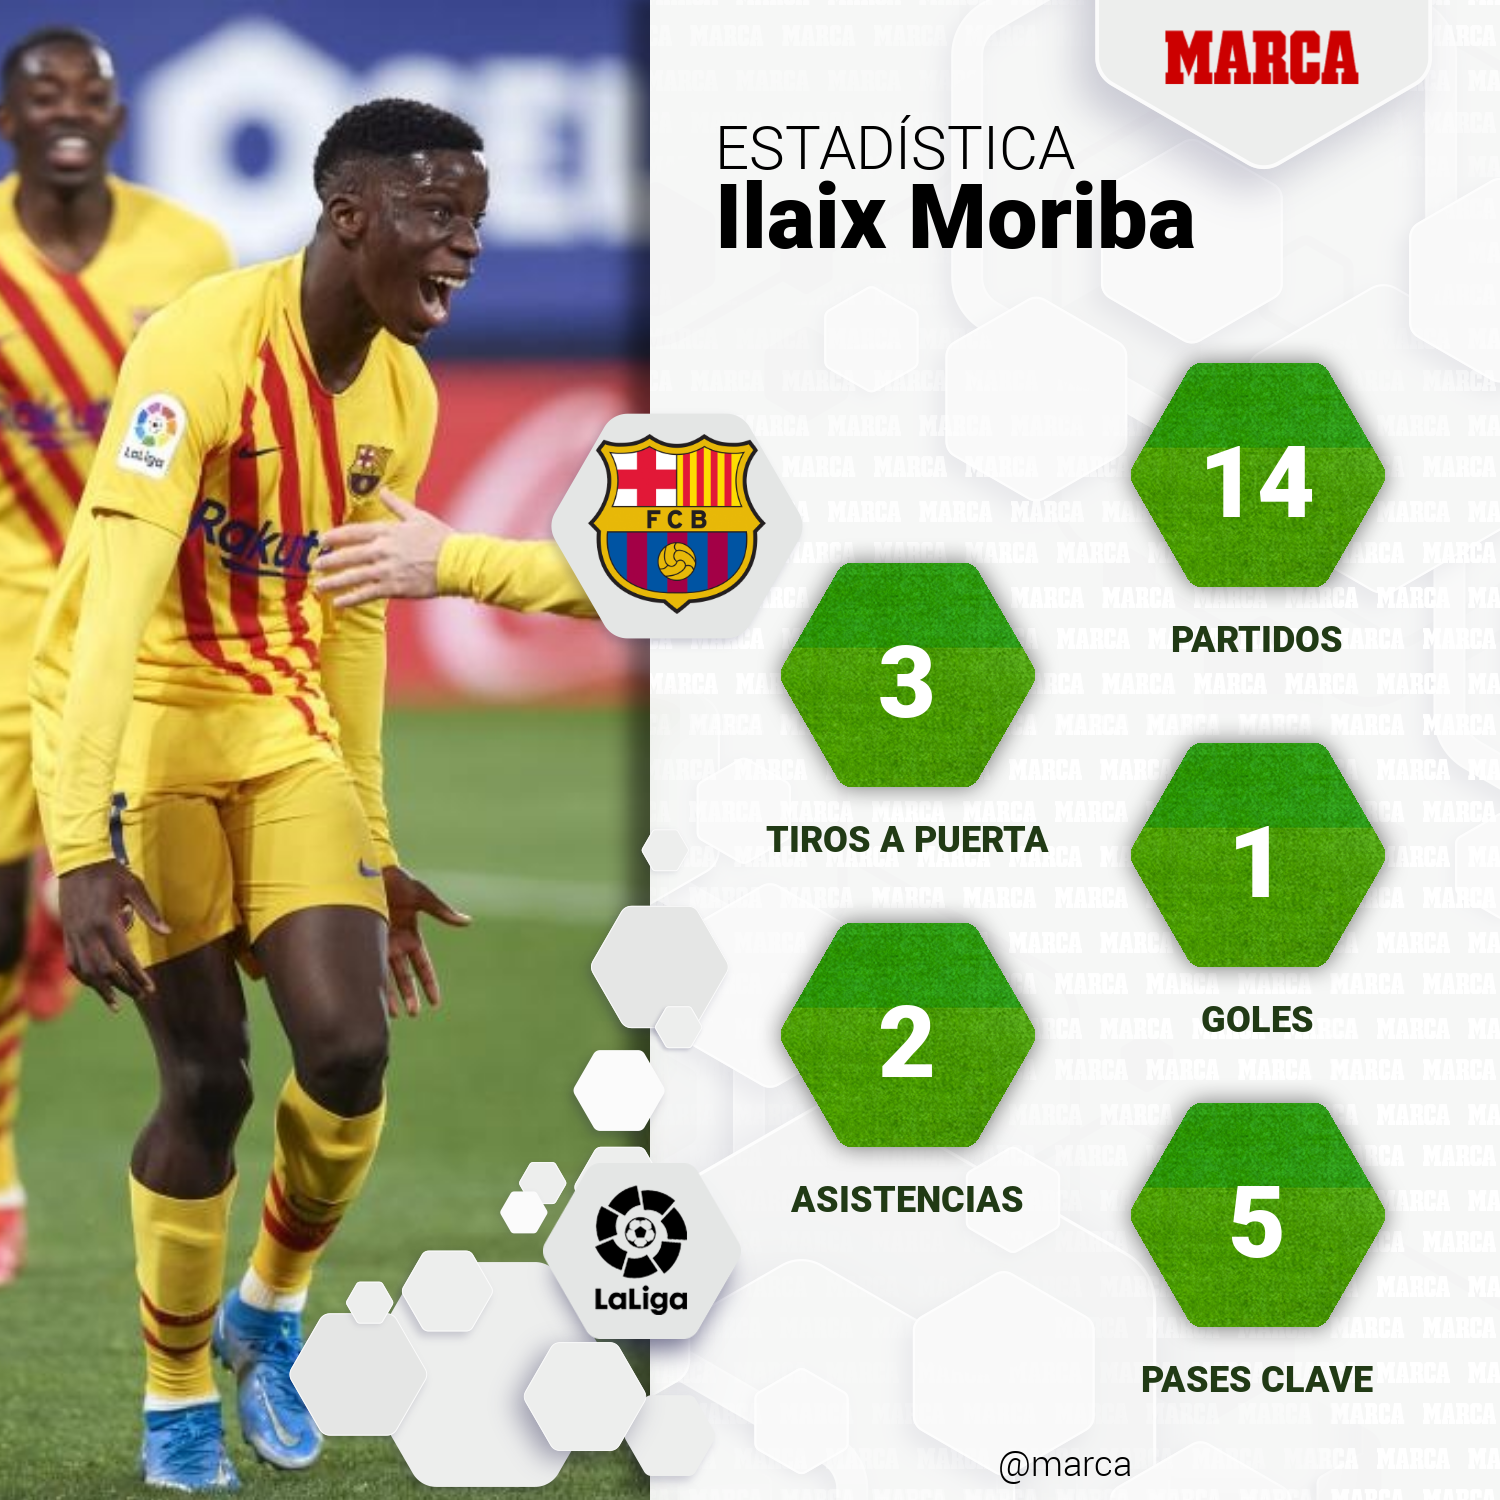 Ilaix Moriba attracts interest from the Premier League